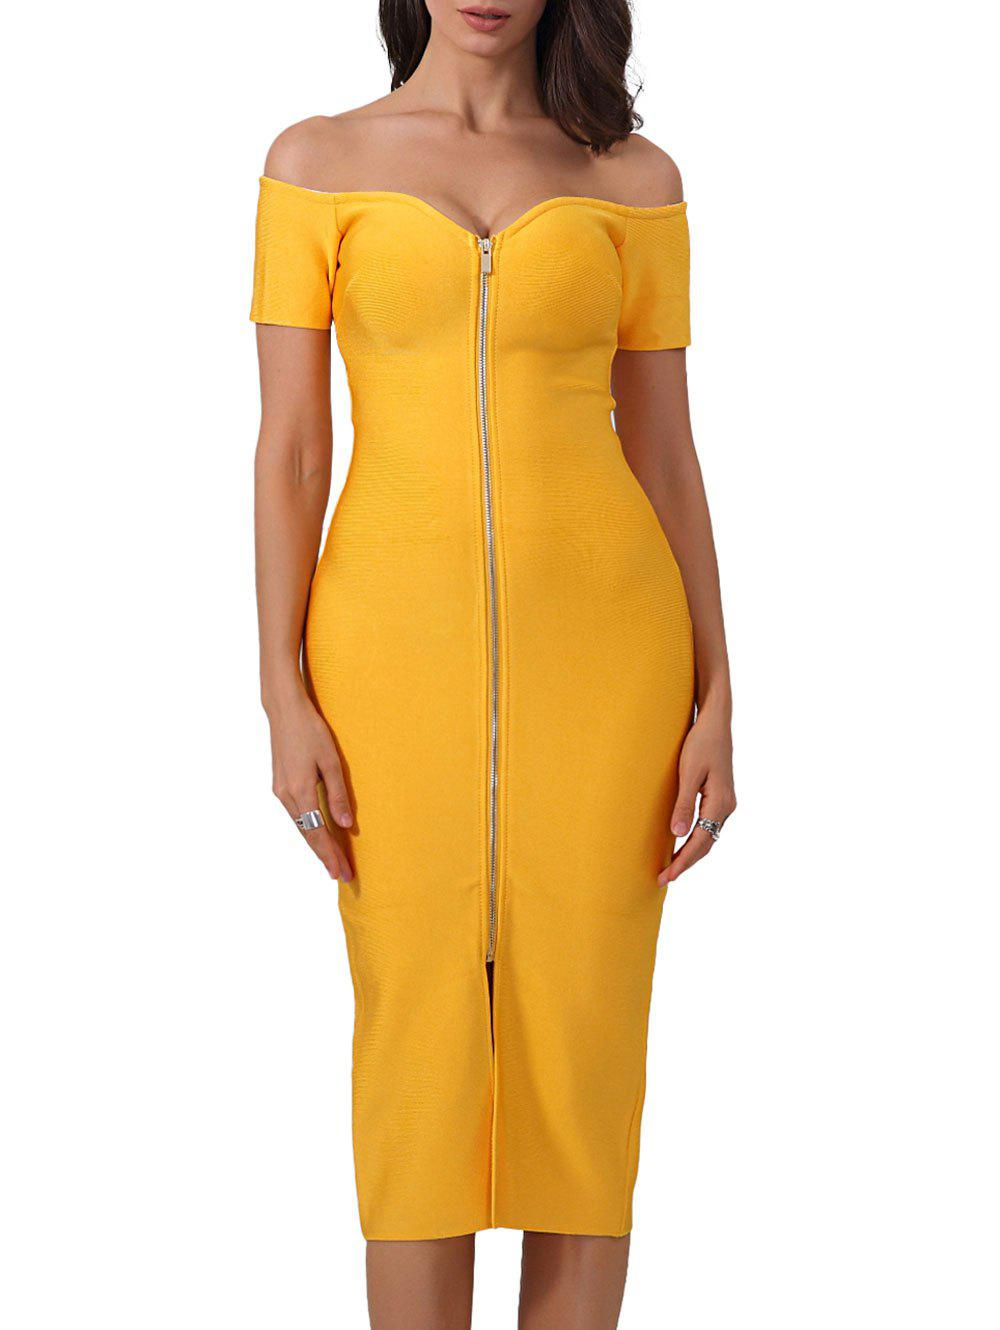 Front Zip Up Off Shoulder Bandage Dress - YELLOW L